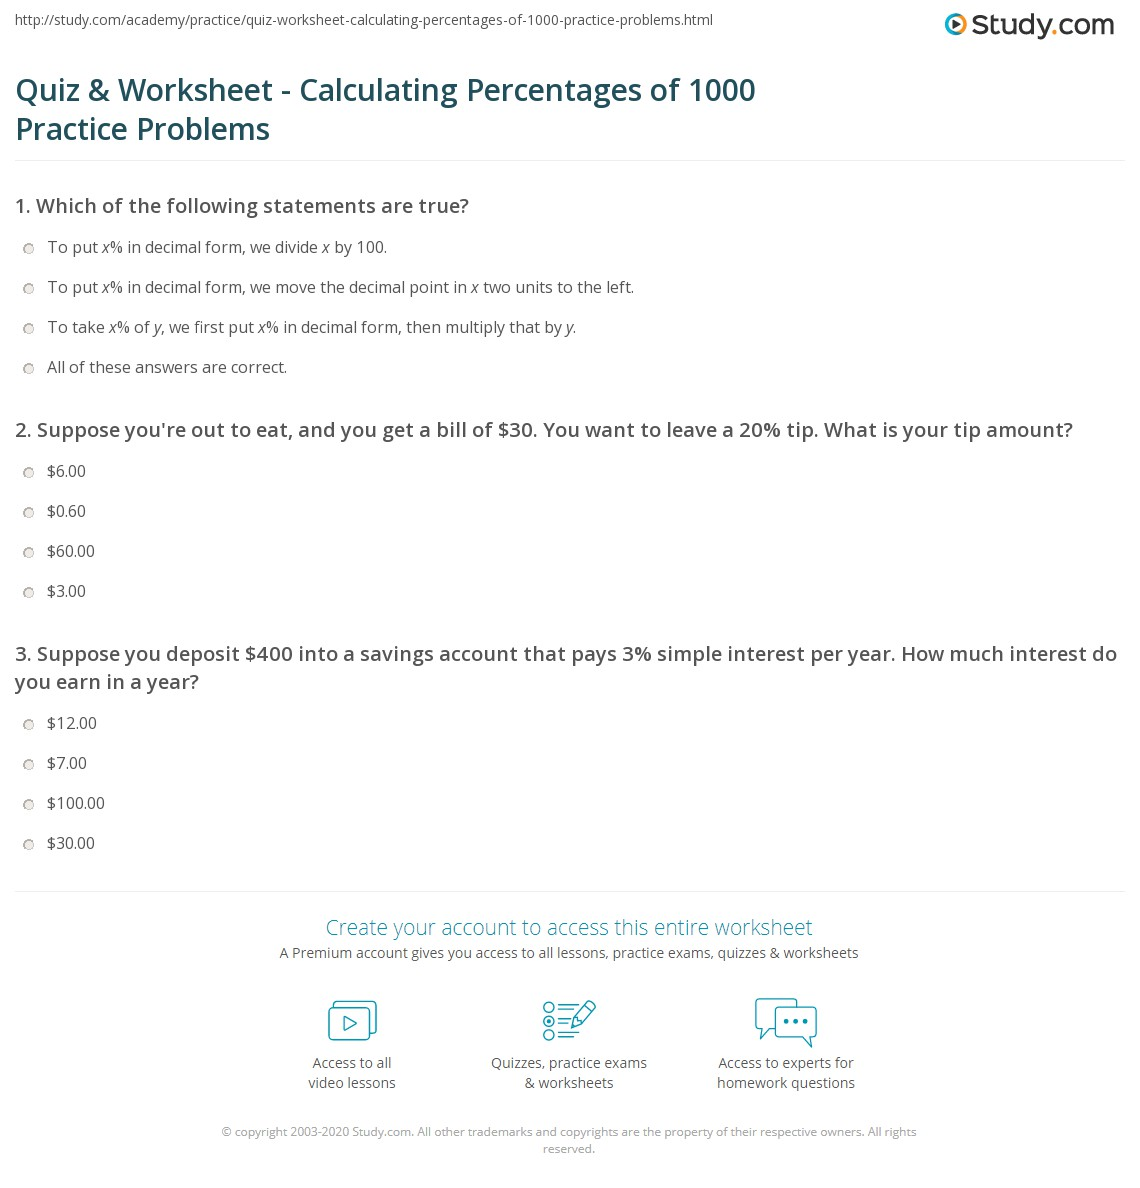 worksheet Percentages Of Amounts Worksheet quiz worksheet calculating percentages of 1000 practice problems print whats 20 percent how to steps worksheet